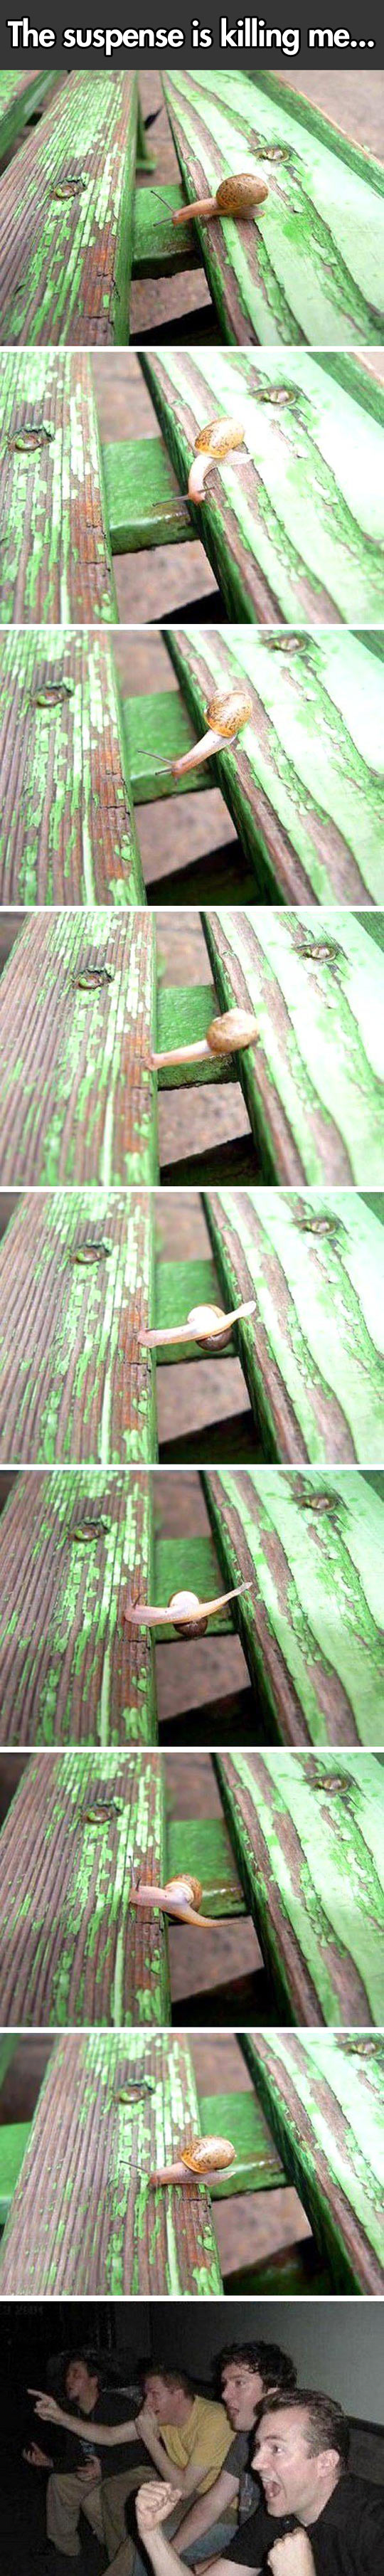 funny-snail-time-slow-suspense